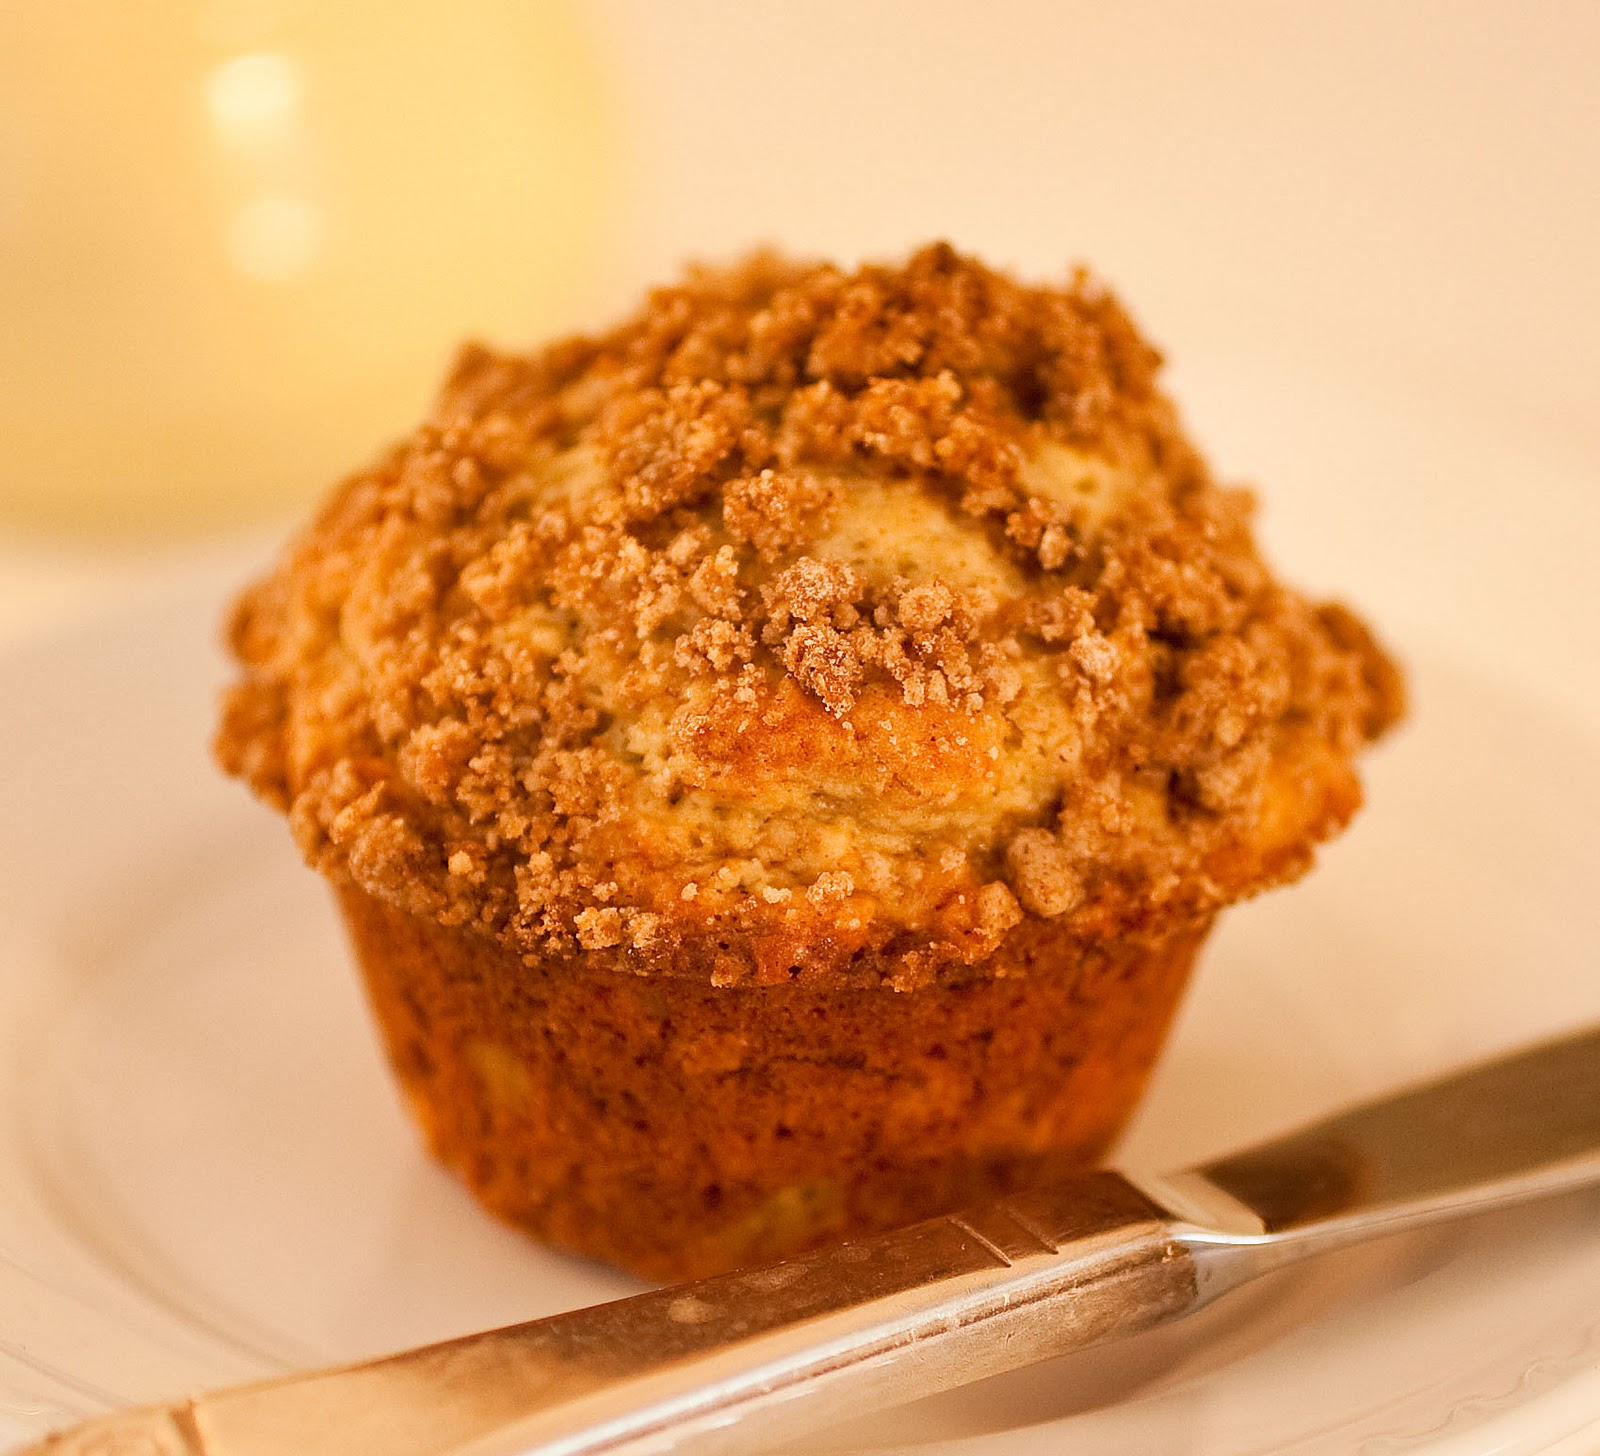 Tish Boyle Sweet Dreams: Roasted Banana Muffins